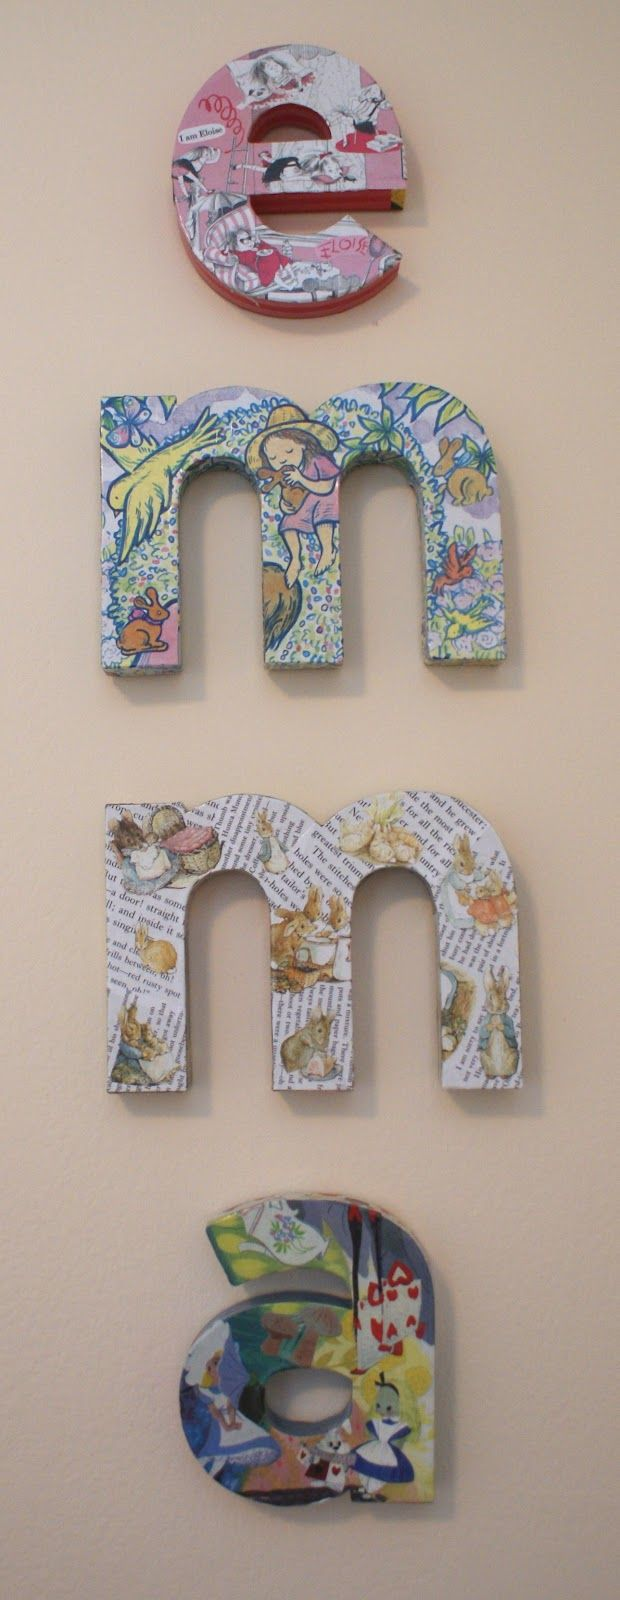 Love this DIY Kids Rooms project for making name block letters using old storybooks, kraft paper letters and Mod Podge.